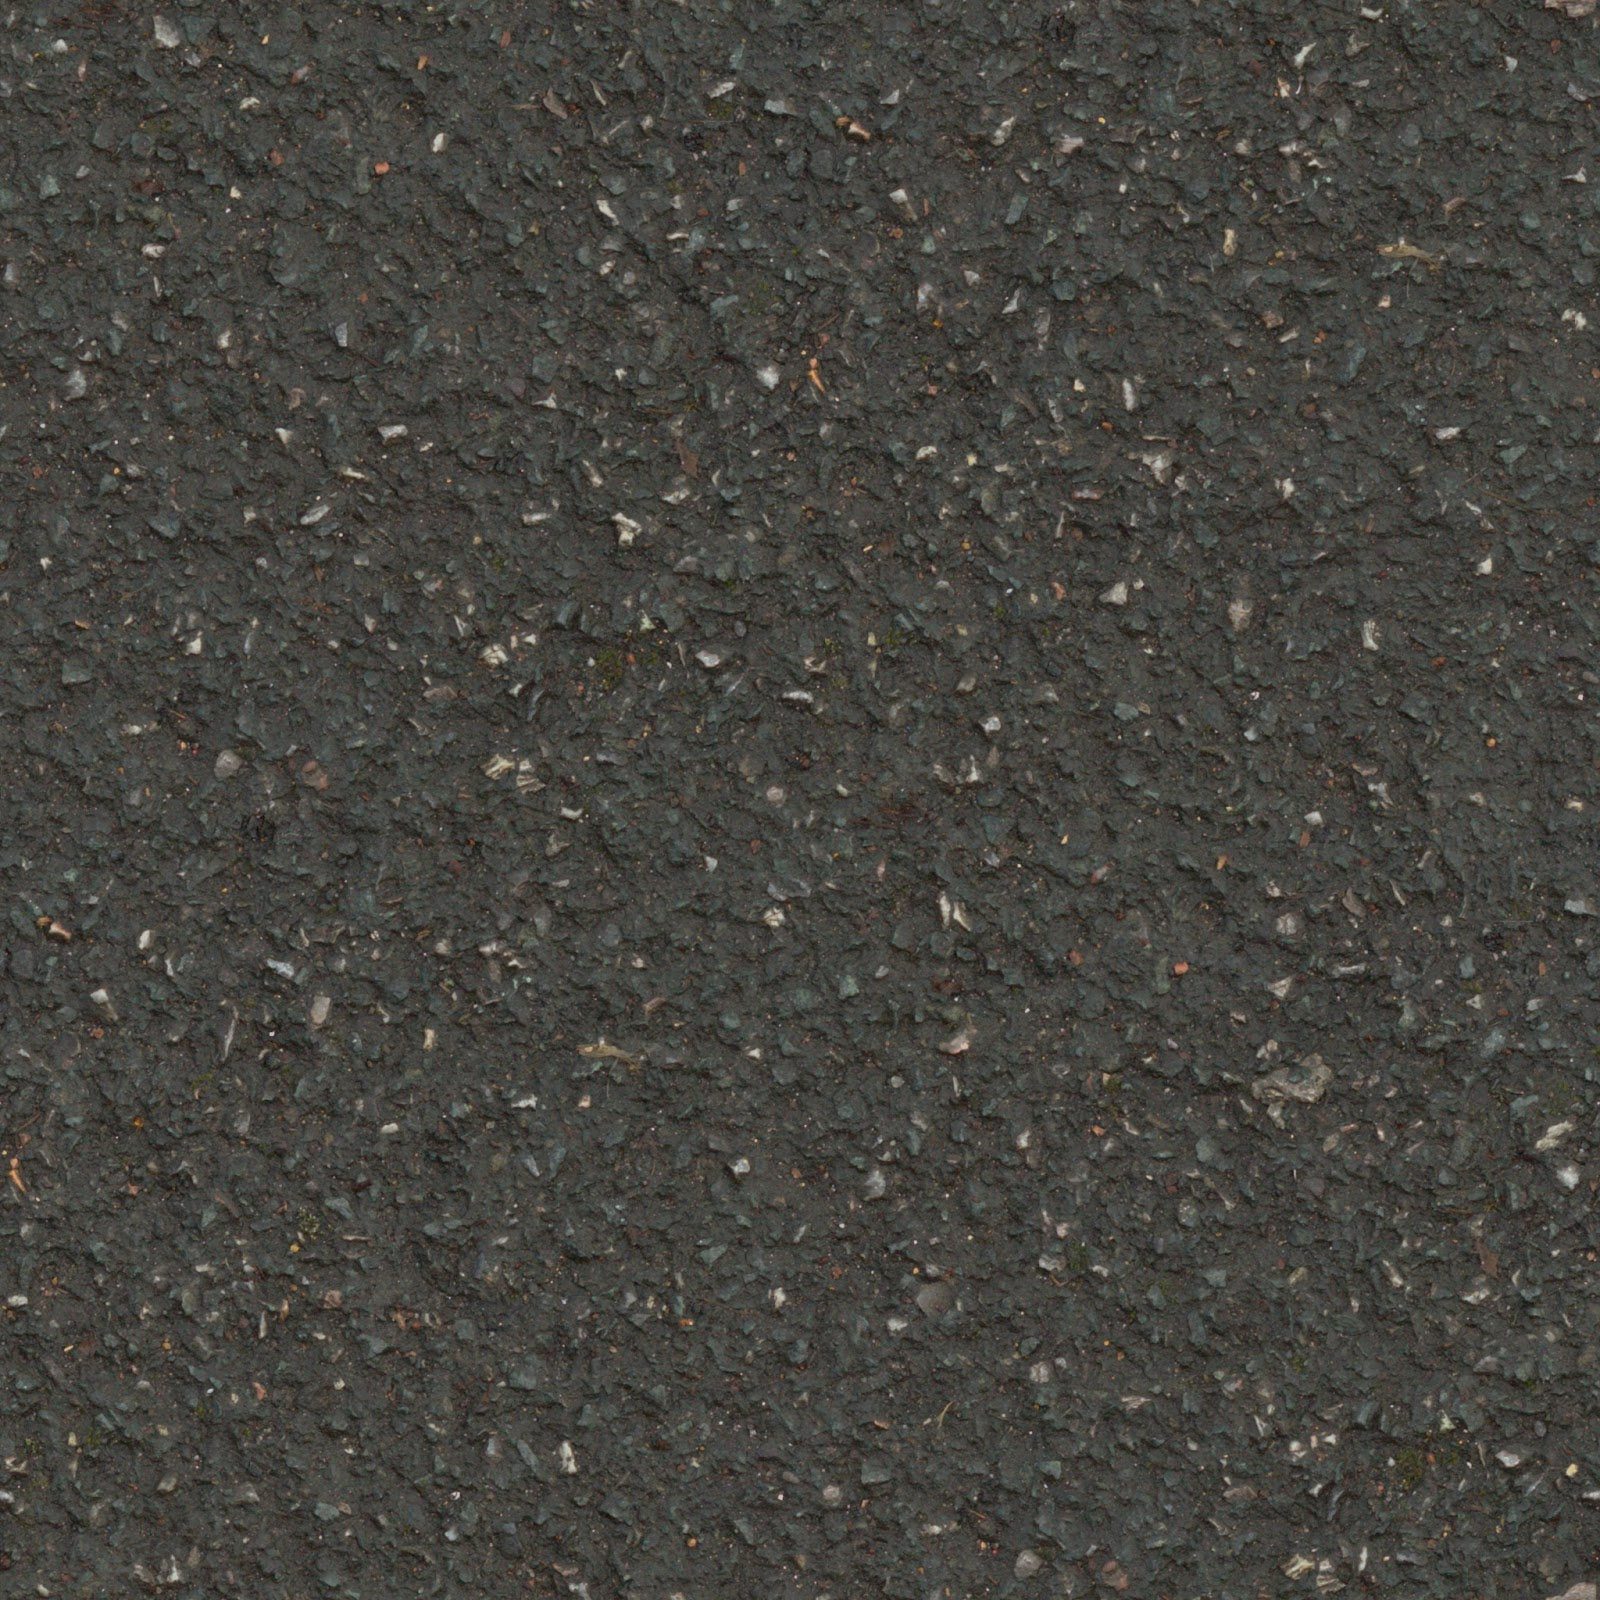 High Resolution Seamless Textures: Asphalt road wet ...